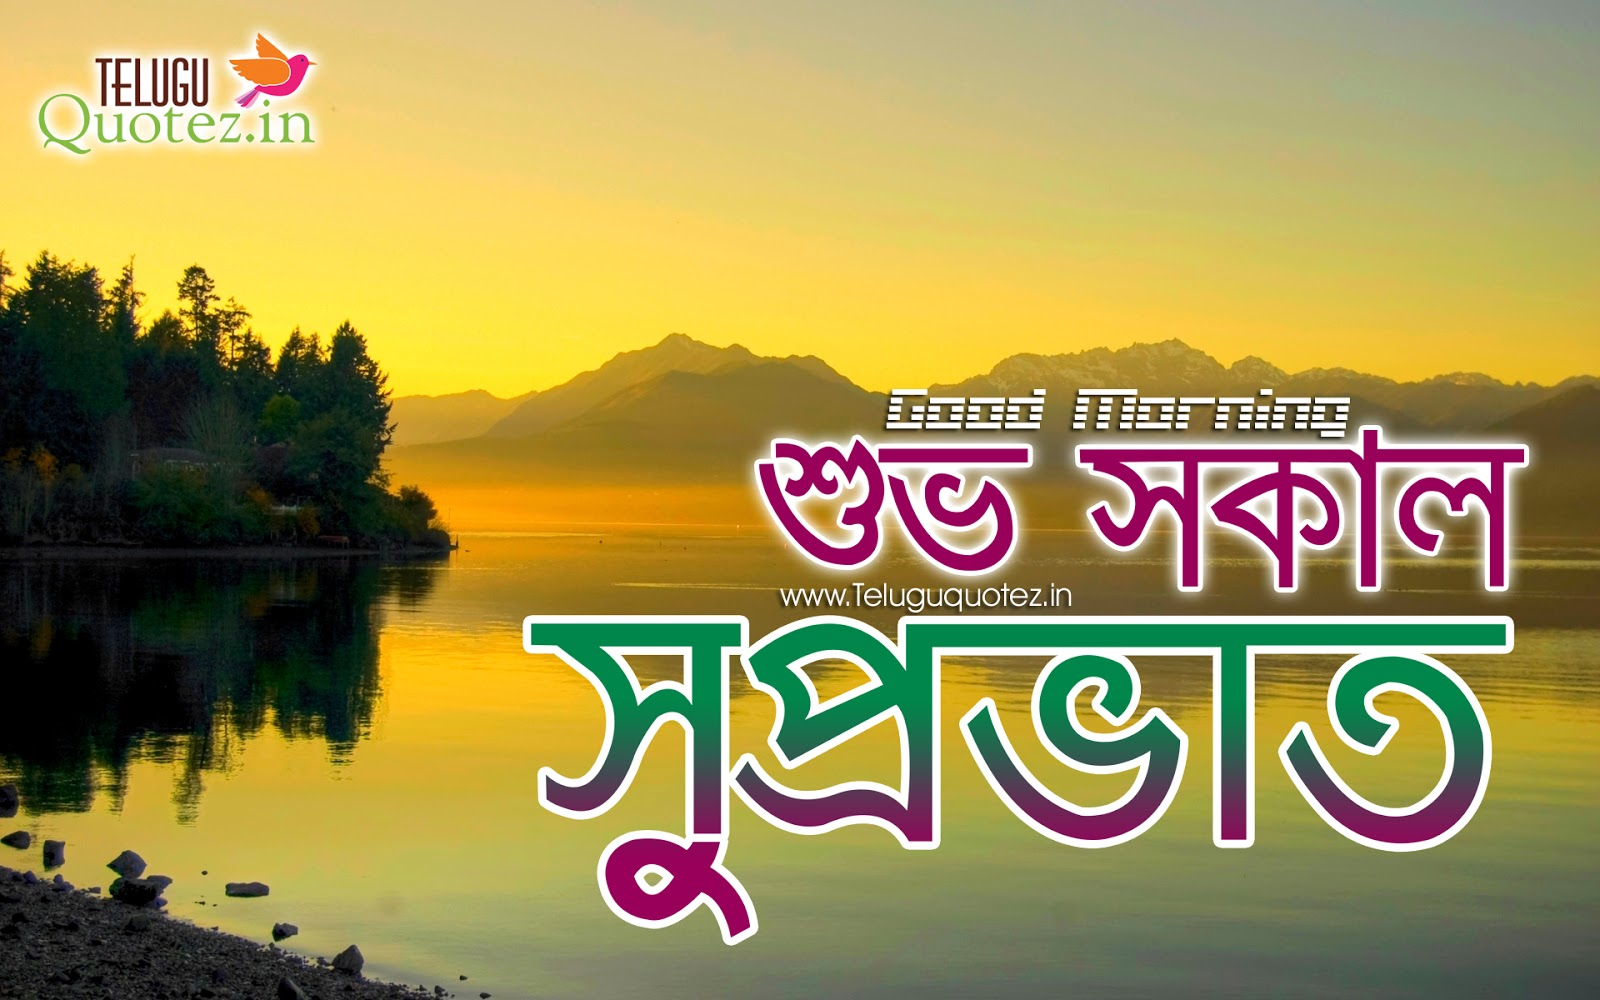 Bengali Good Morning Quotes Images Teluguquotezin Telugu Quotes